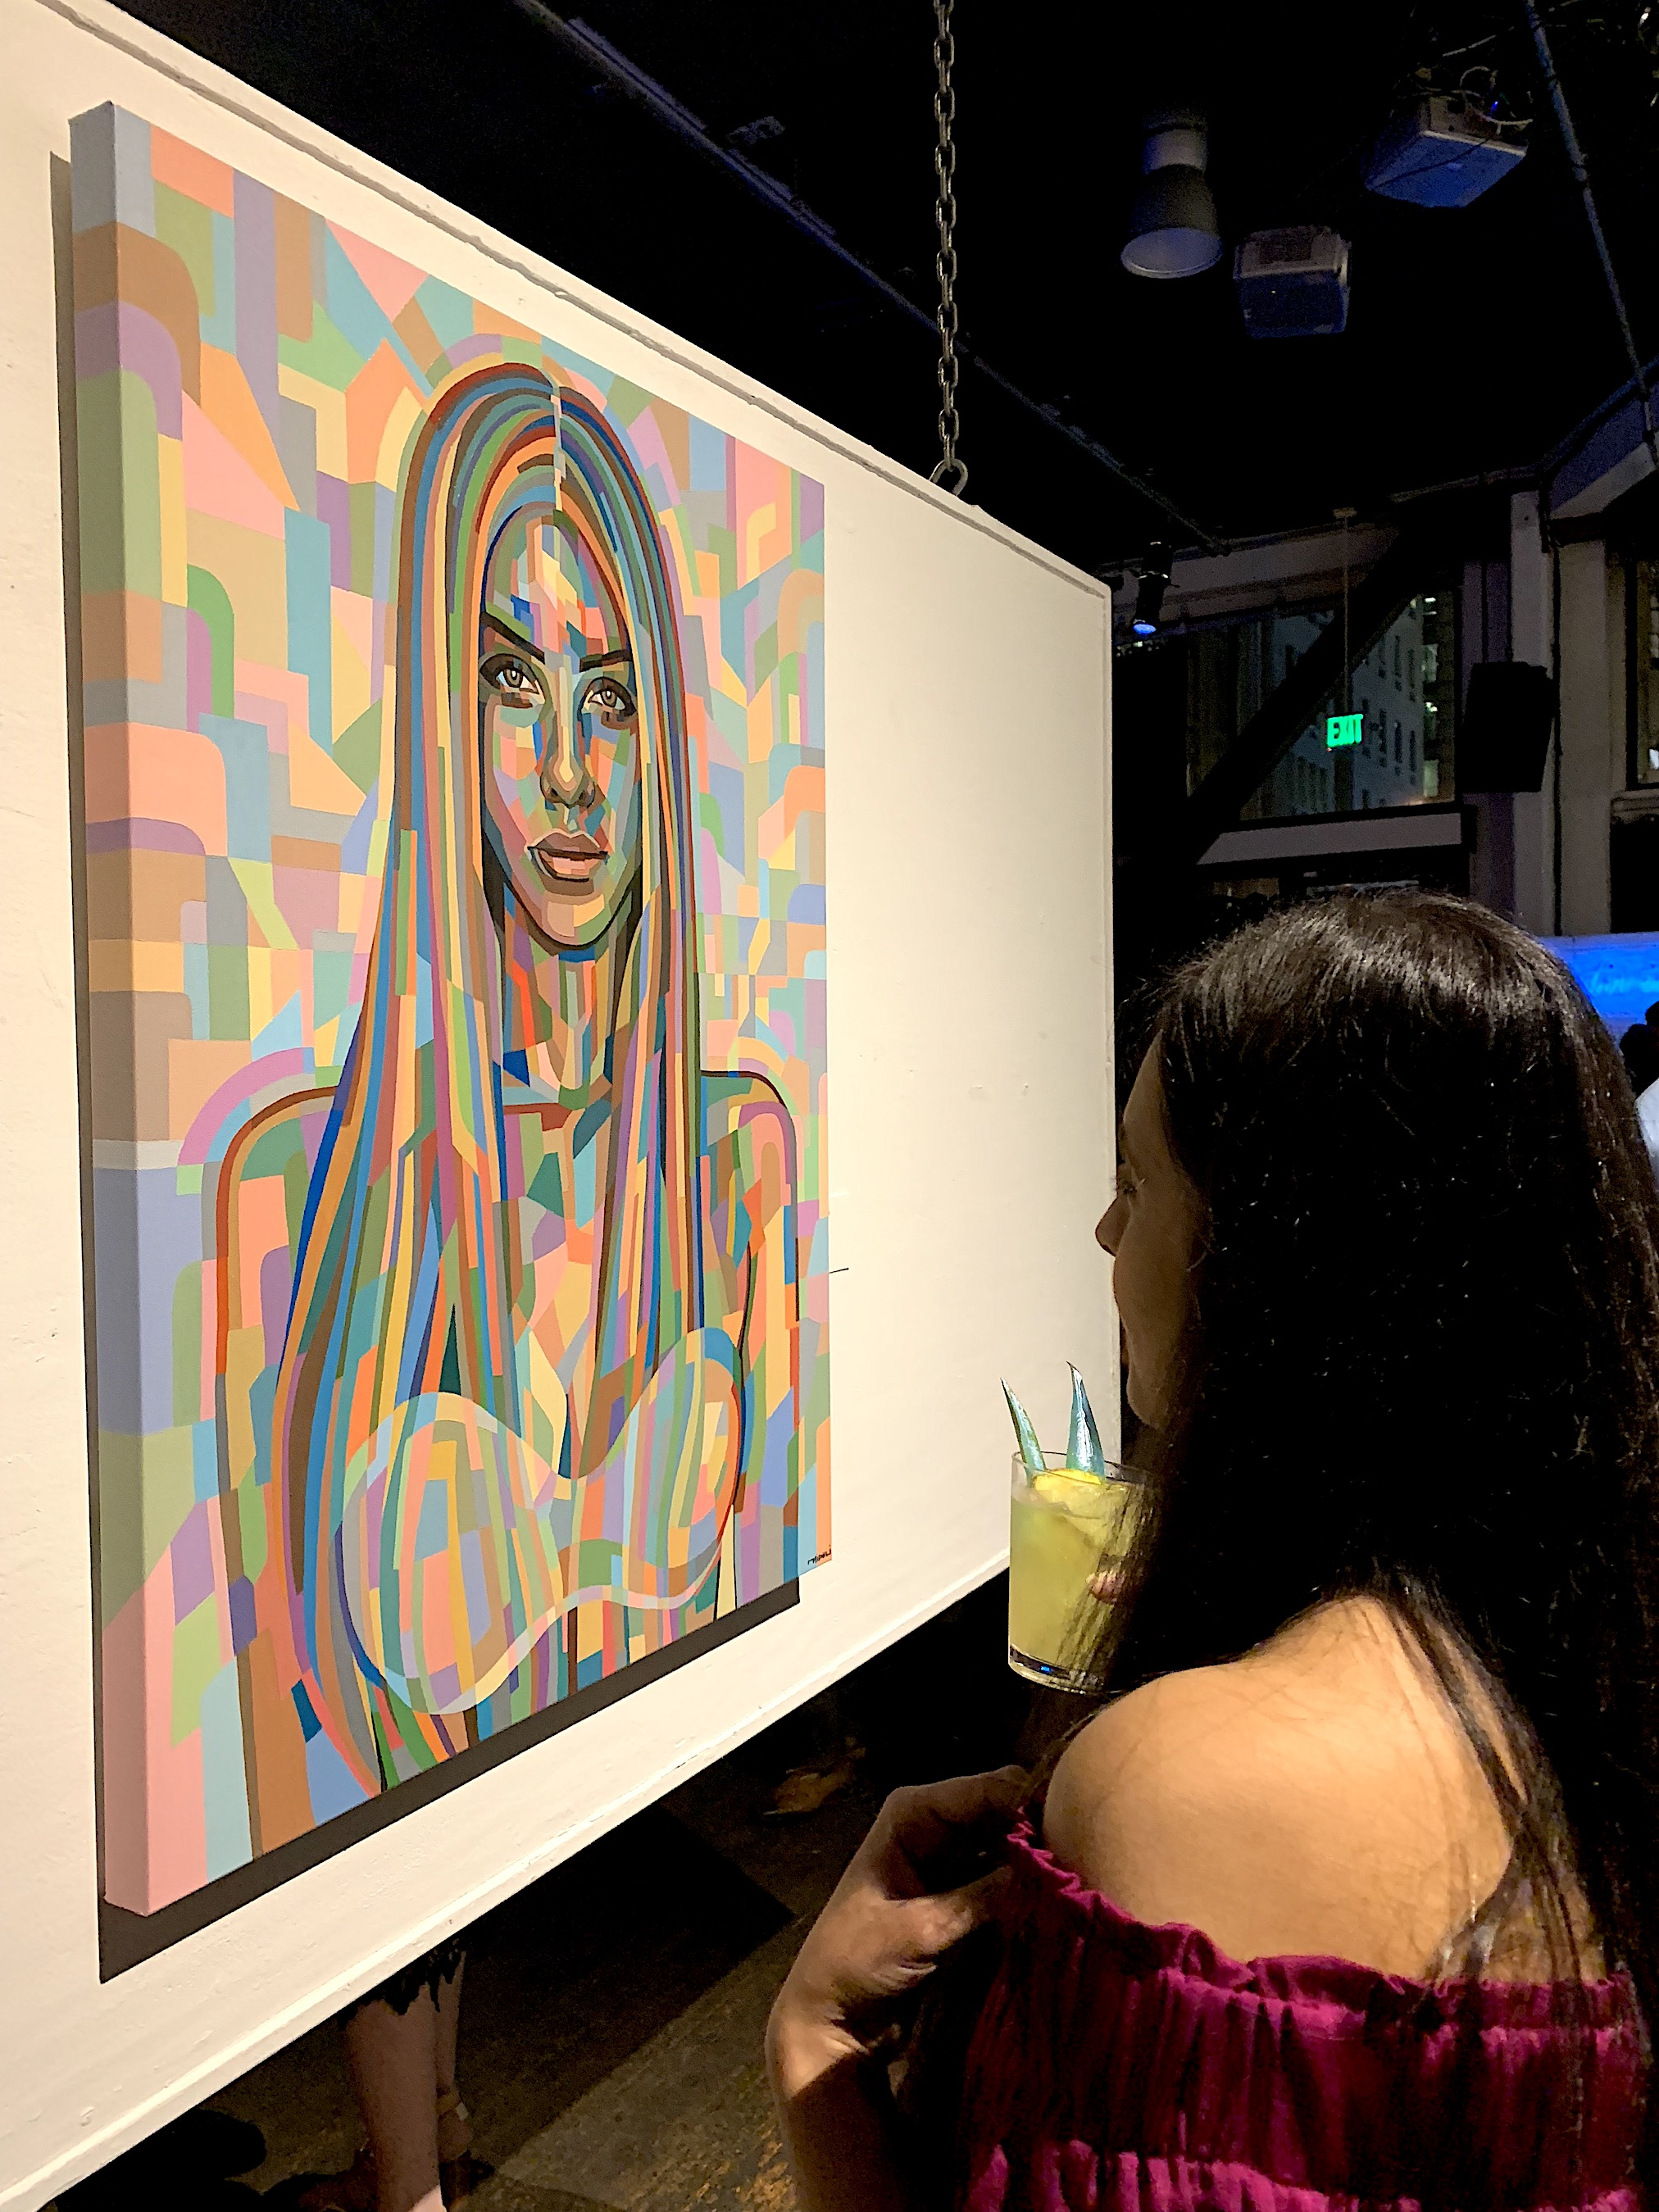 - Nidhi Moghariya is a contemporary artist based in San Francisco Bay Area, whose vibrant portraits celebrate the beauty of women. Her aim is not so much to represent her subjects realistically, but rather to re-imagine their energy in the paint. Spending countless hours breaking down her subject into patterns and fragments of color Nidhi produces artworks that are not only striking but deep and powerful. Painted predominantly with acrylic paint, each piece begins with a subject, but with a large amount of experimentation, each art piece takes on its own journey from start to finish. The pieces challenge viewers to draw upon their own emotions and personal experiences.